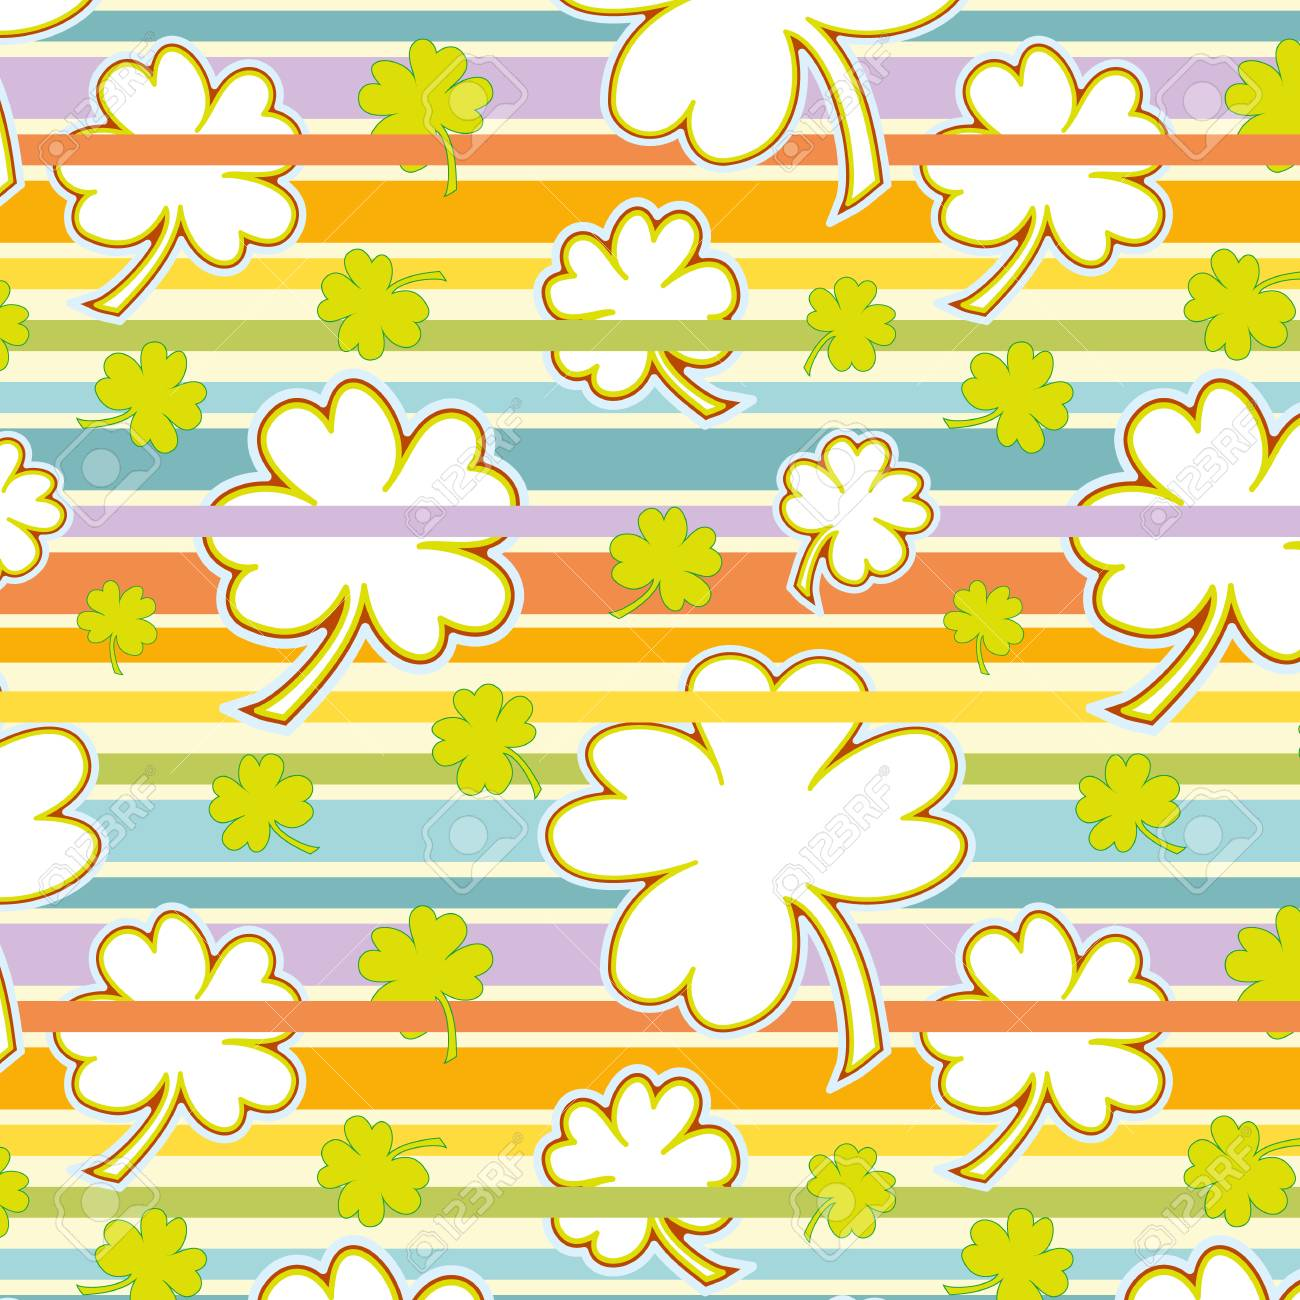 cute clover seamless pattern on a colorful striped background Stock Vector - 24772232